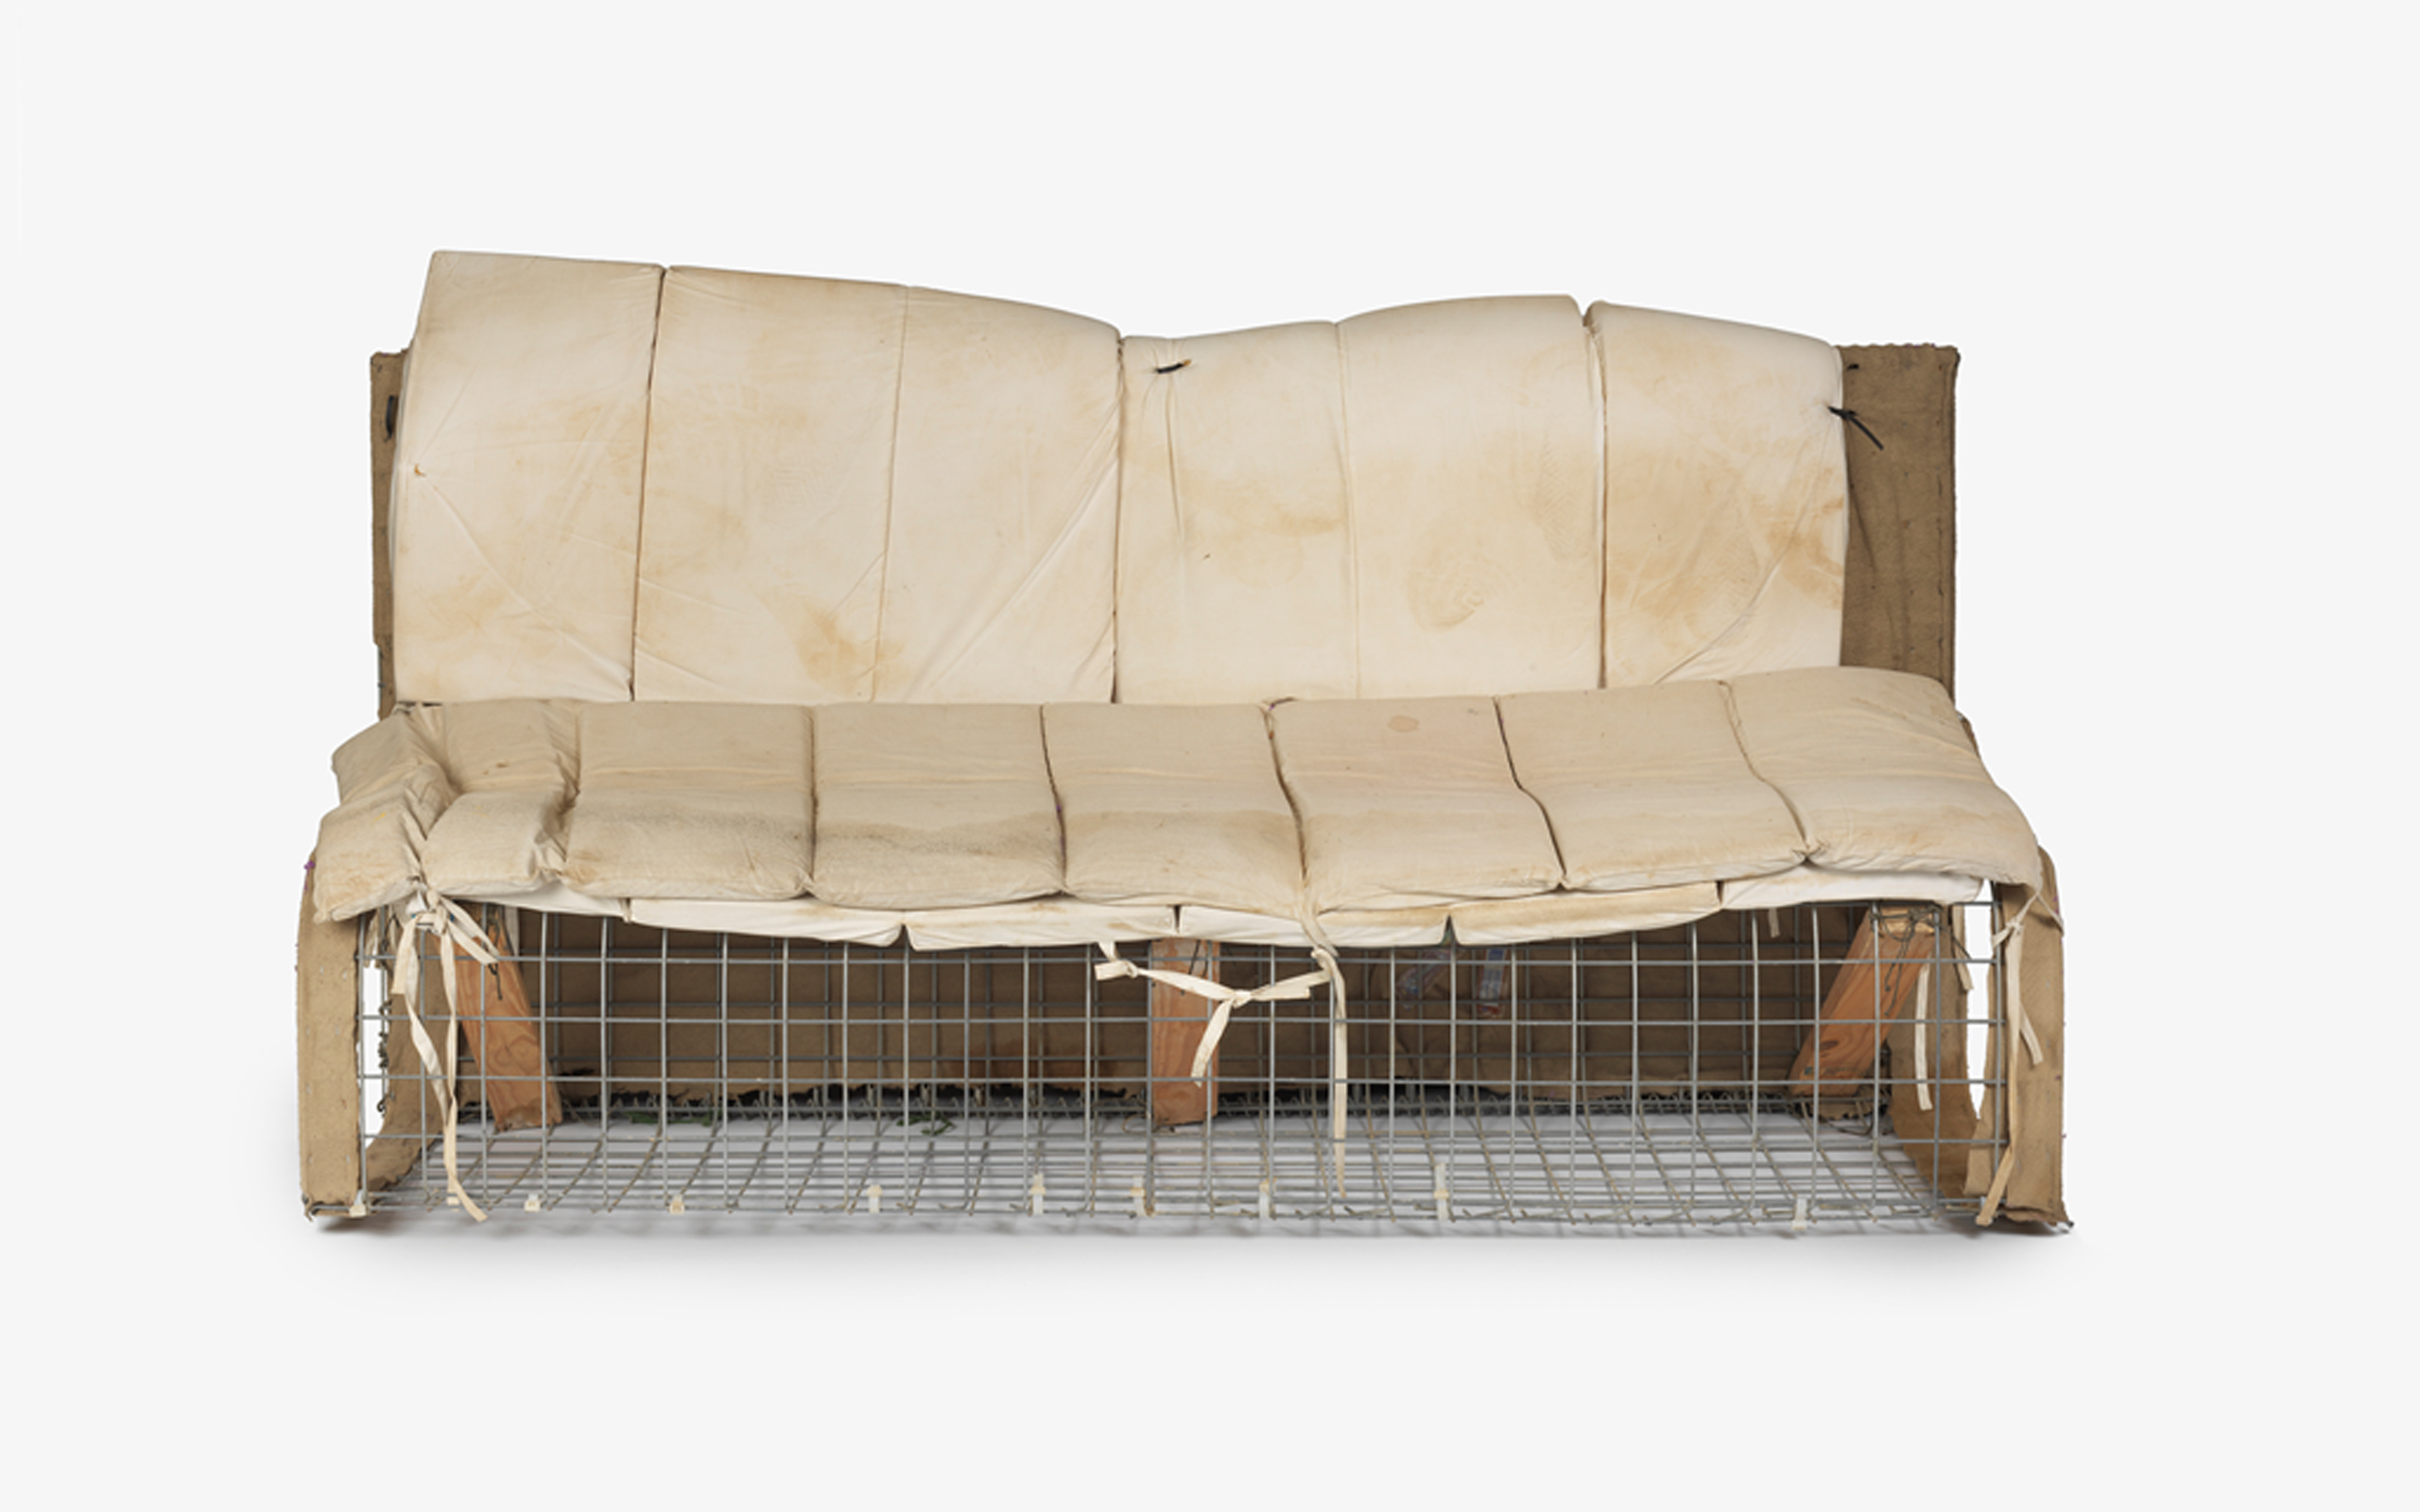 Improvised sofa made from a HESCO by the British Army in Afghanistan